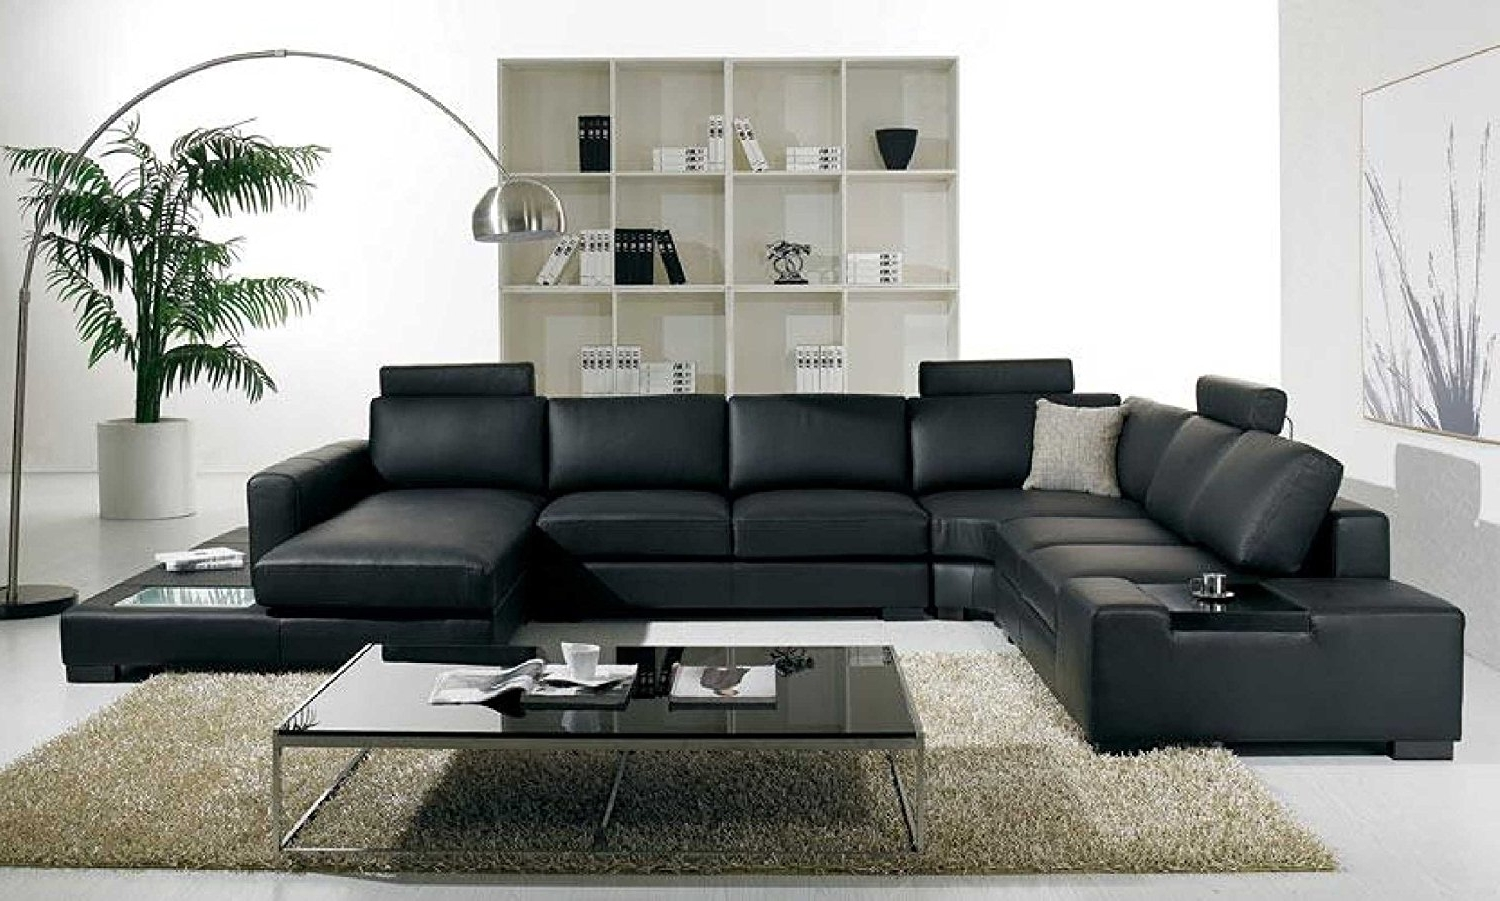 Popular Amazon: T35 Modern Black Sectional Sofa With 3 Headrests With Regard To Black Sectional Sofas (View 11 of 15)